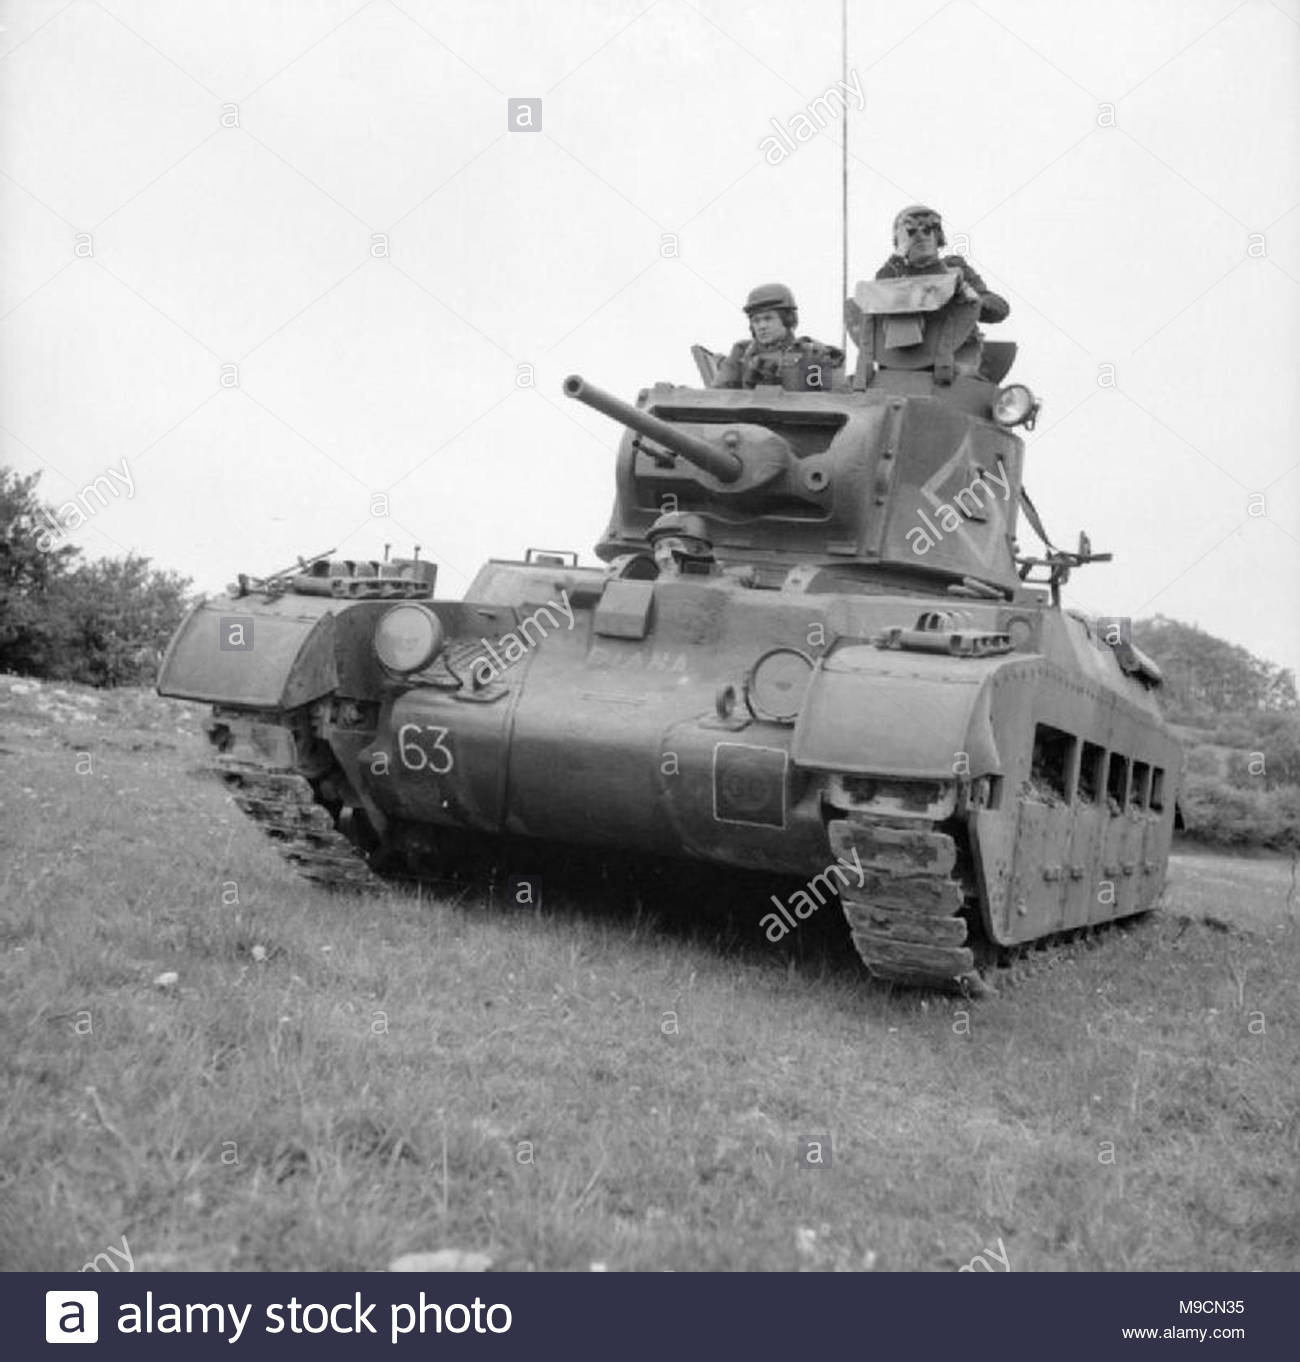 Matilda - tank of the army of Great Britain. Tank Matilda IV - World of Tanks Guide 11